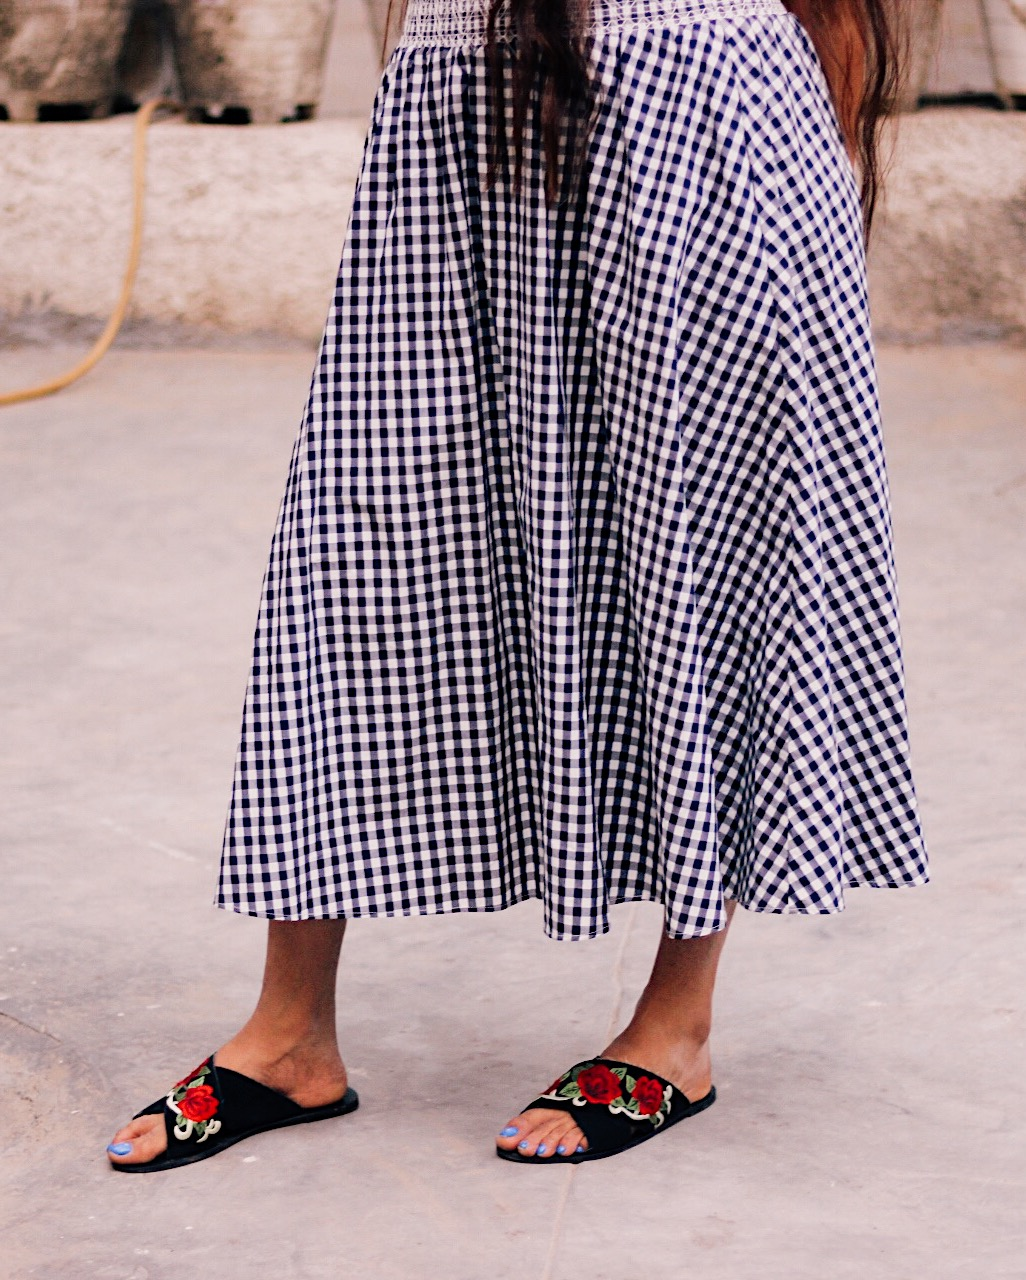 slides shoe trend 2018, shoe trend, trend 2018, major trend of the year, indian blogger, uk blog, london blog, gingham skirt, asos slides, embroidered slides, slides, slippers,